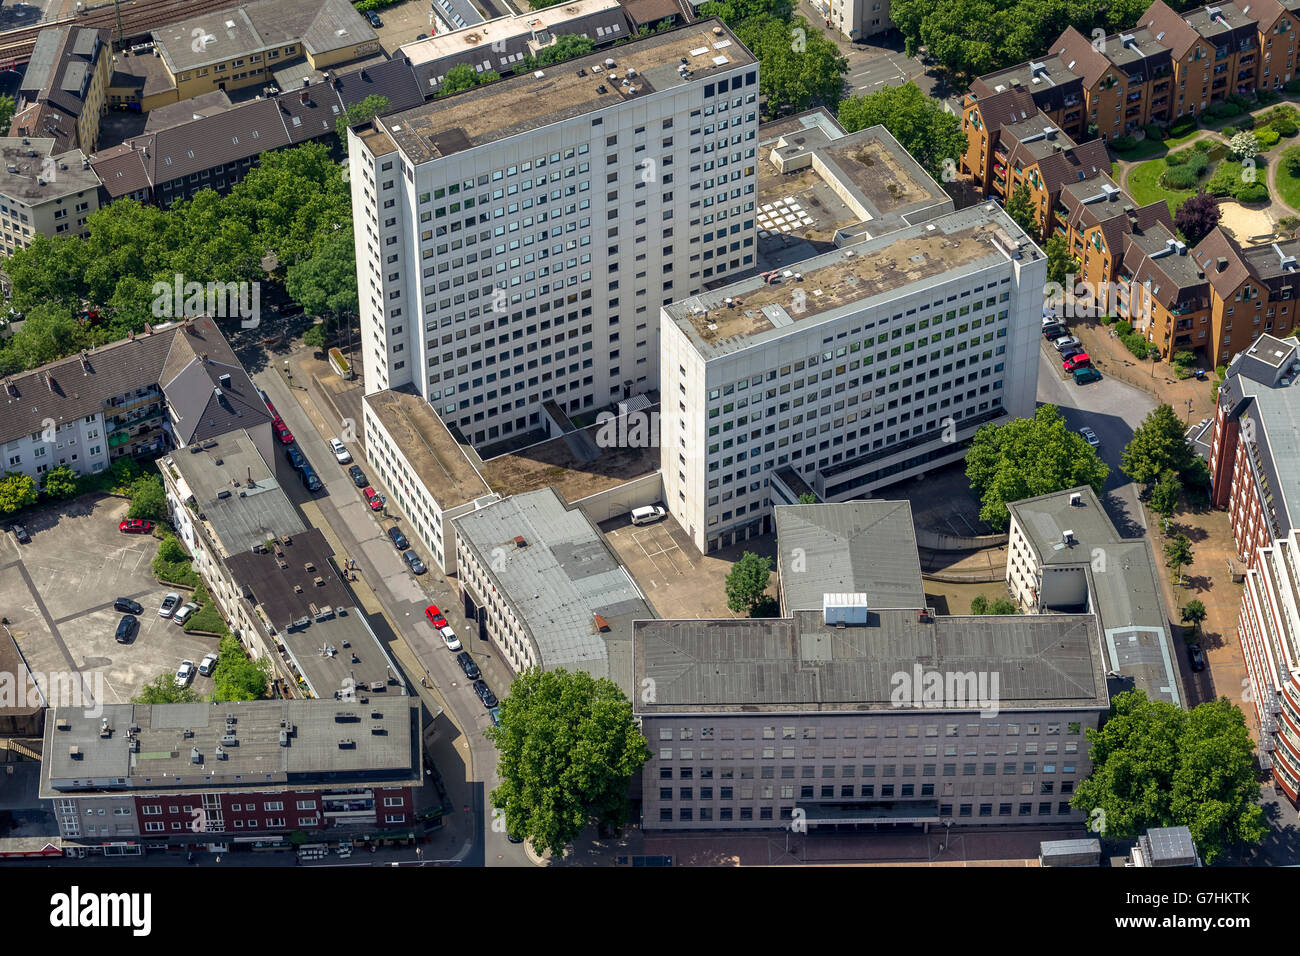 Aerial view, Justice Center at Ostring addition of Fiege Brewery, Bochum, Ruhr area, North Rhine-Westphalia, Germany, - Stock Image